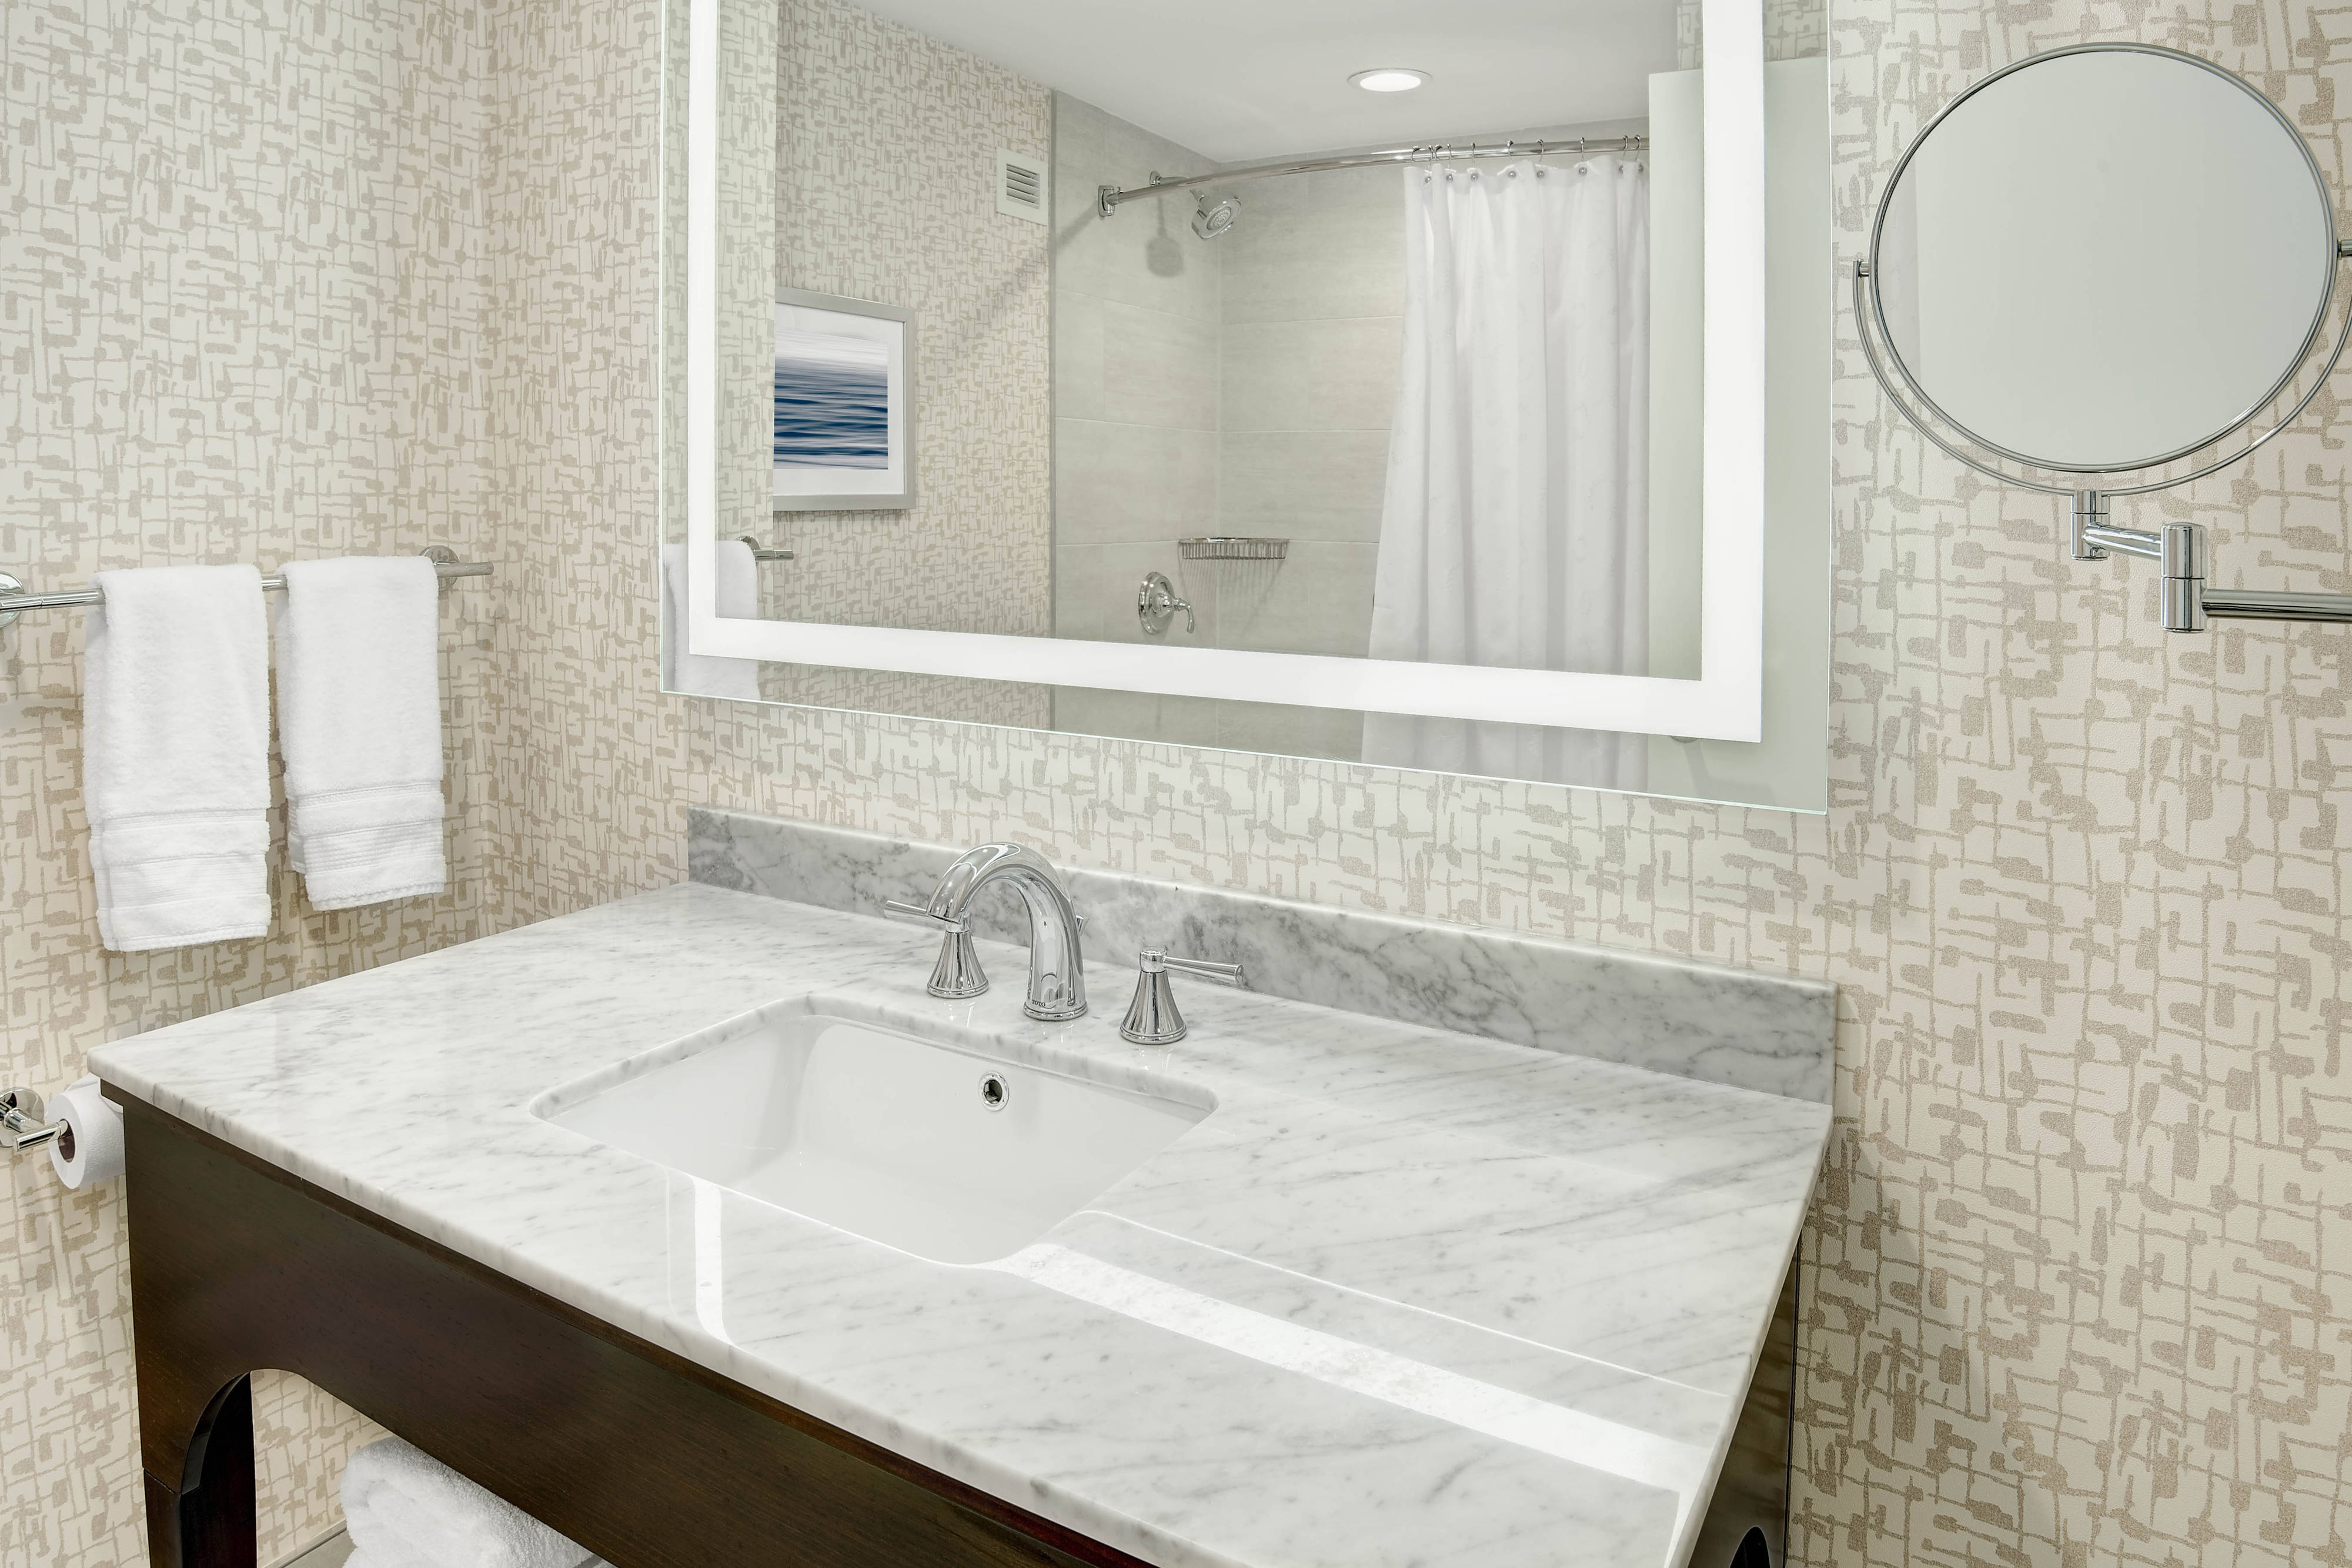 Bathroom Vanity with Tub Shower